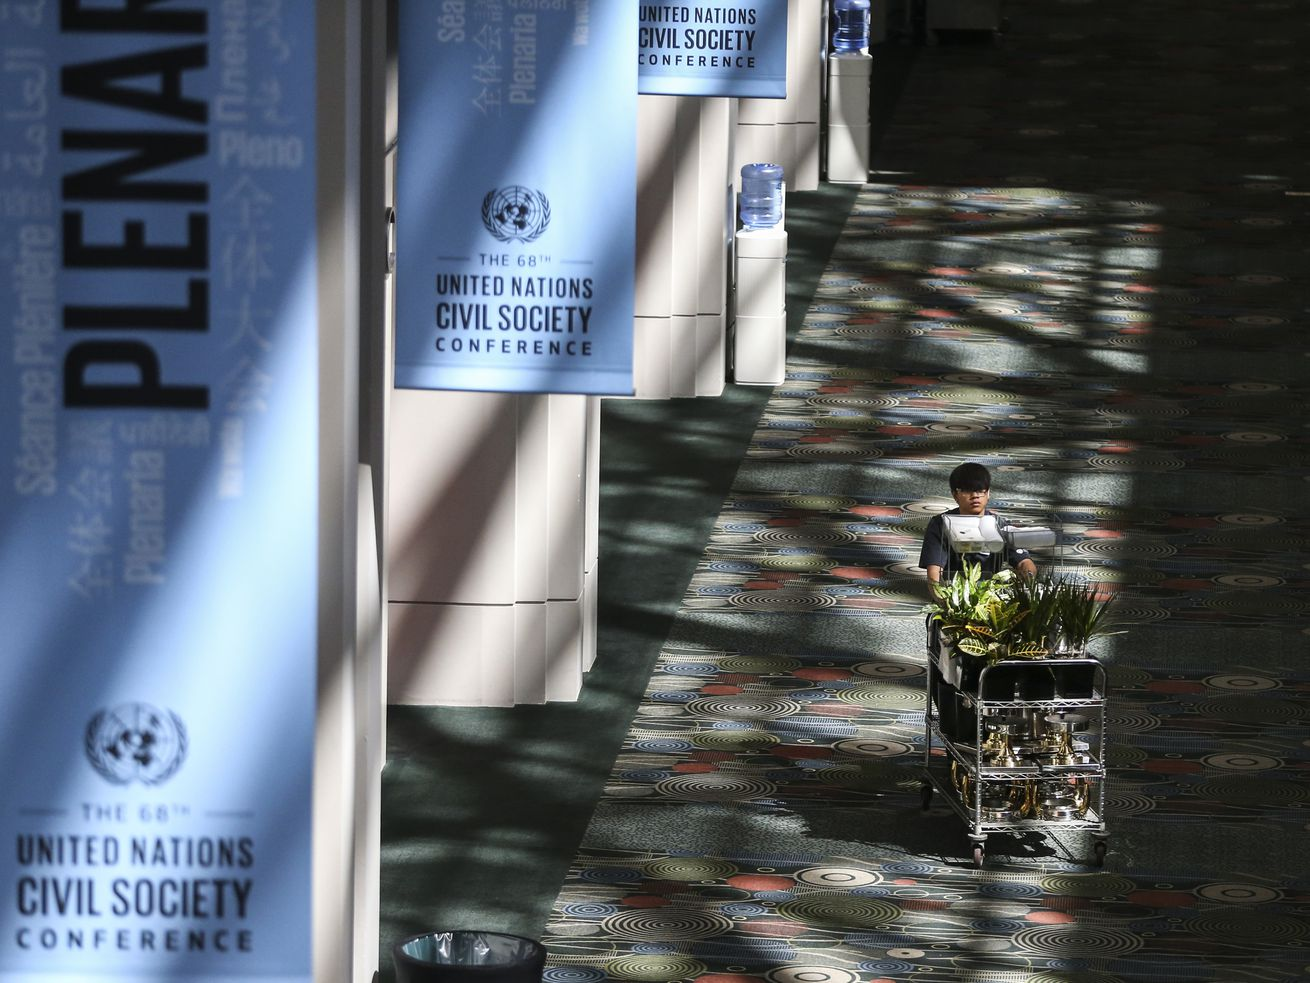 Photos: Salt Lake City set to welcome the world at U.N. conference